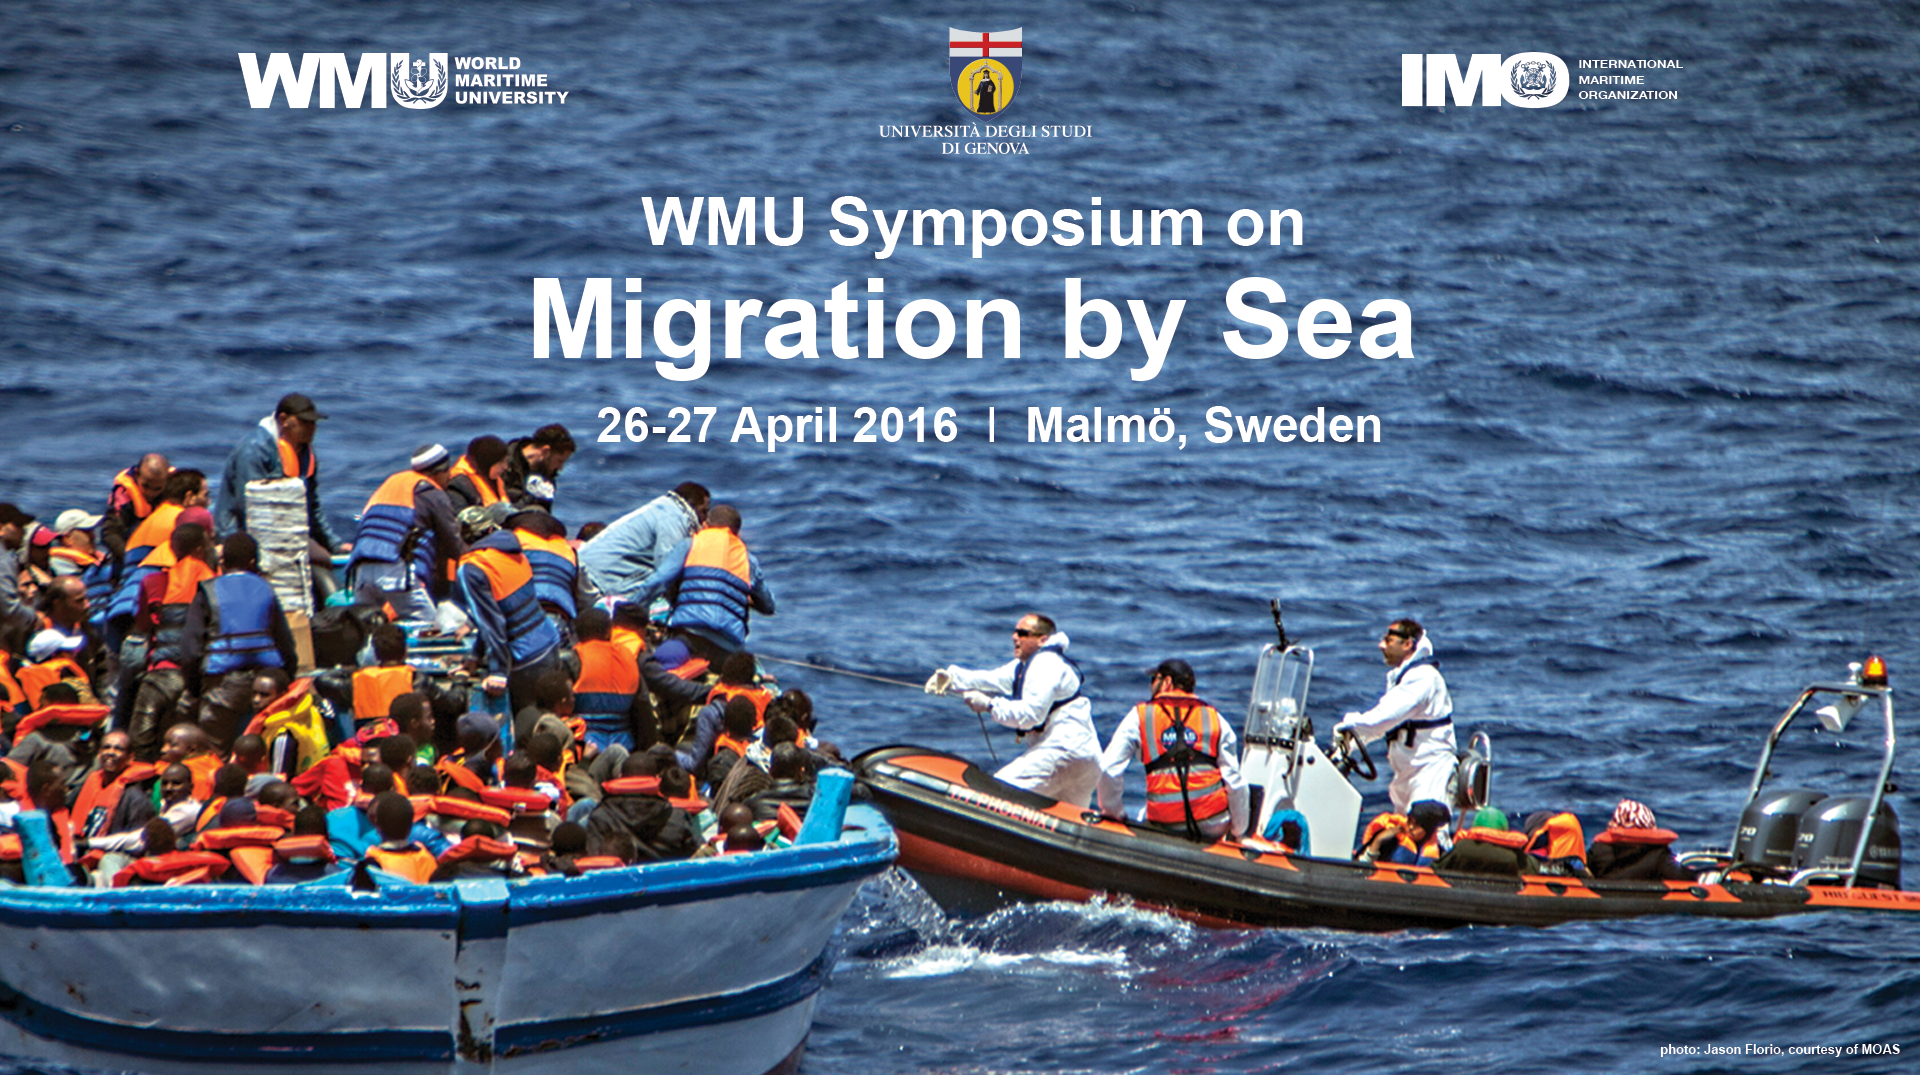 WMU Symposium on Migration by Sea, Malmö, Sweden, 26-27 April 2016